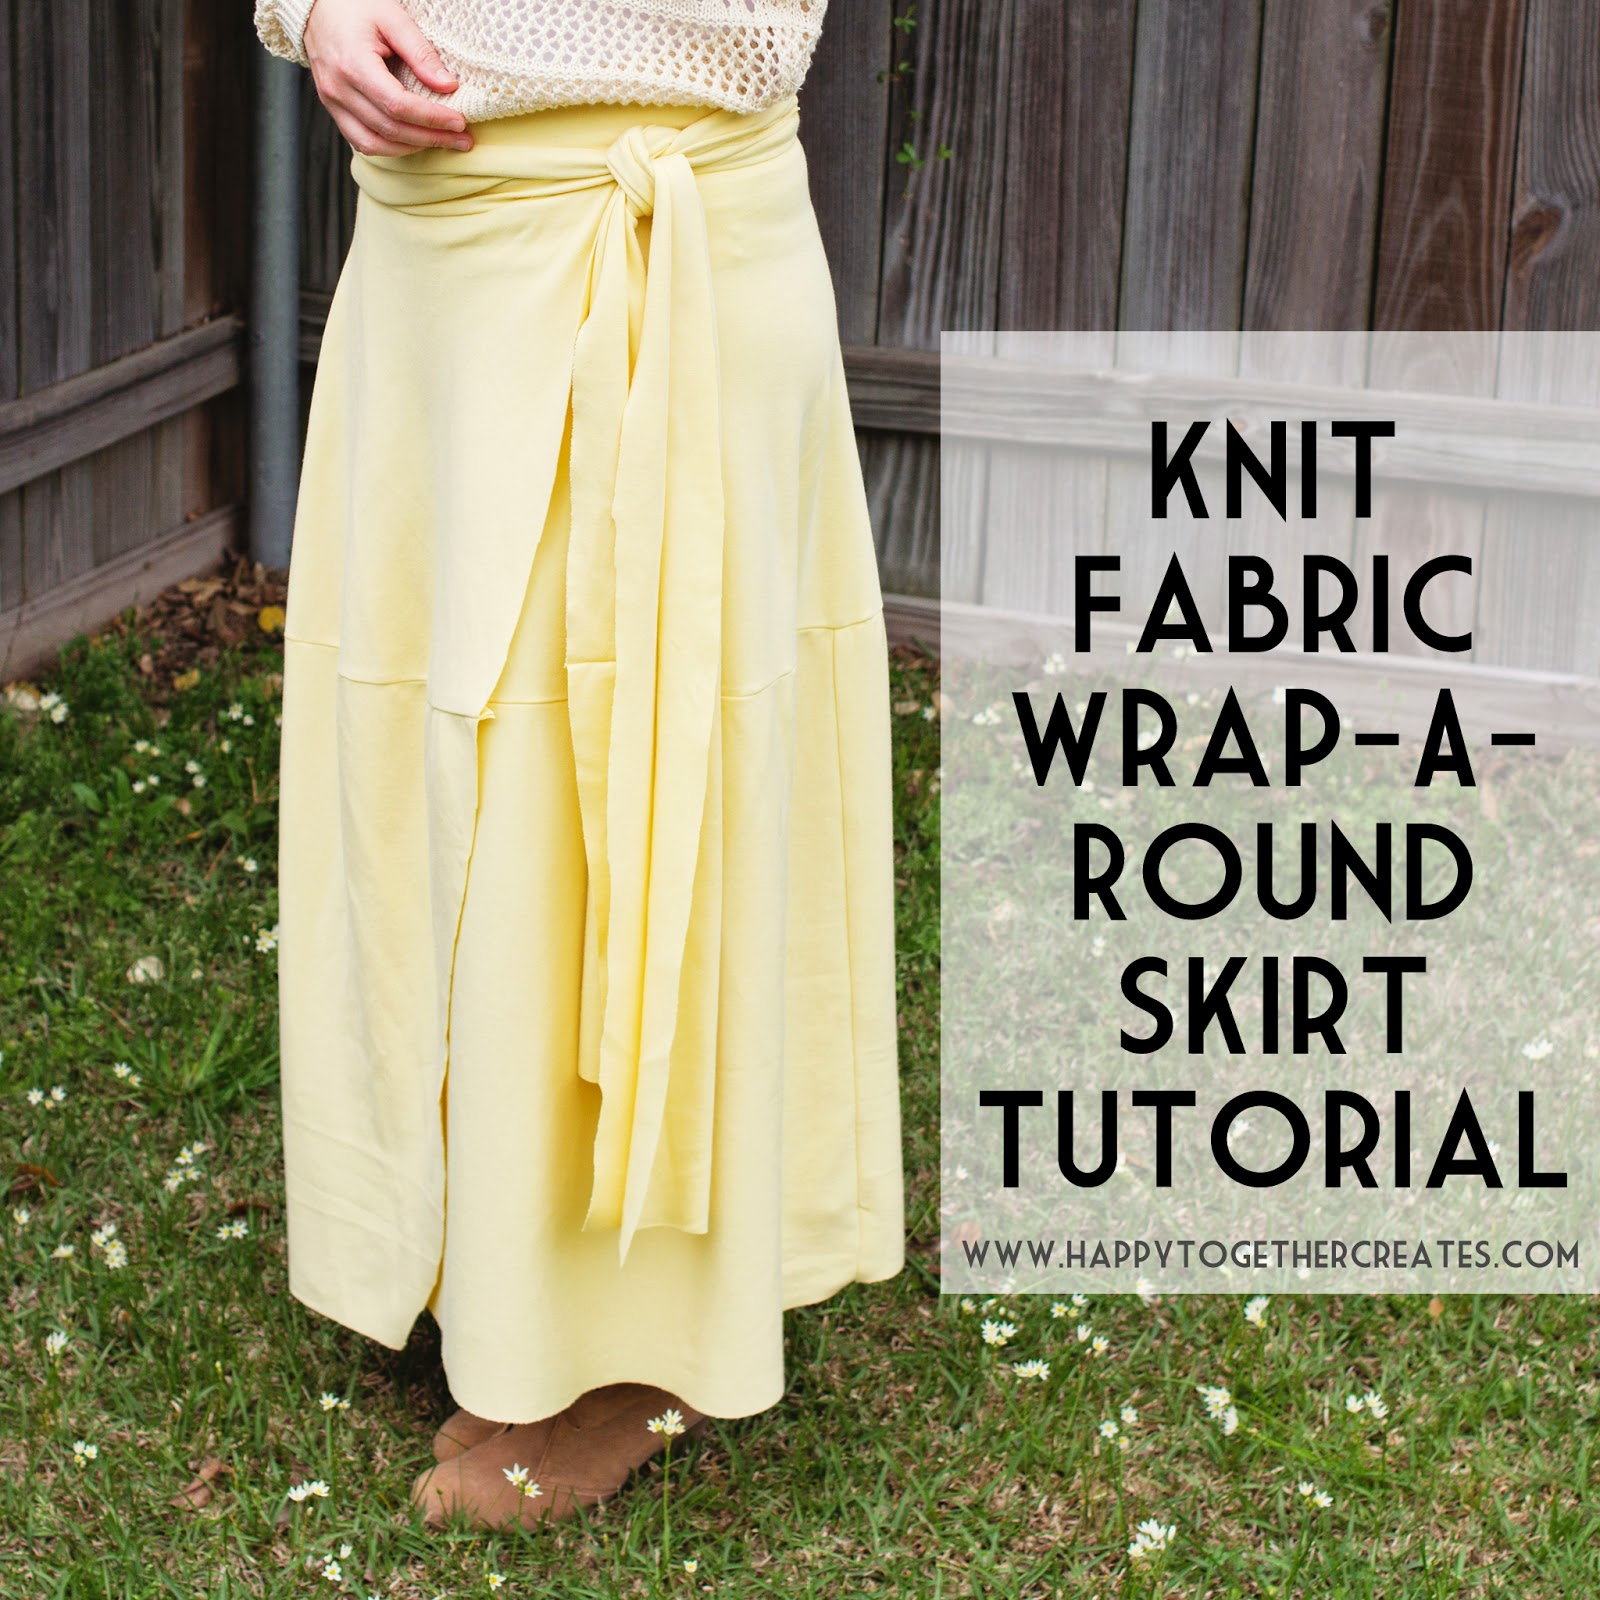 Knit Fabric Wrap A Round Skirt Tutorial